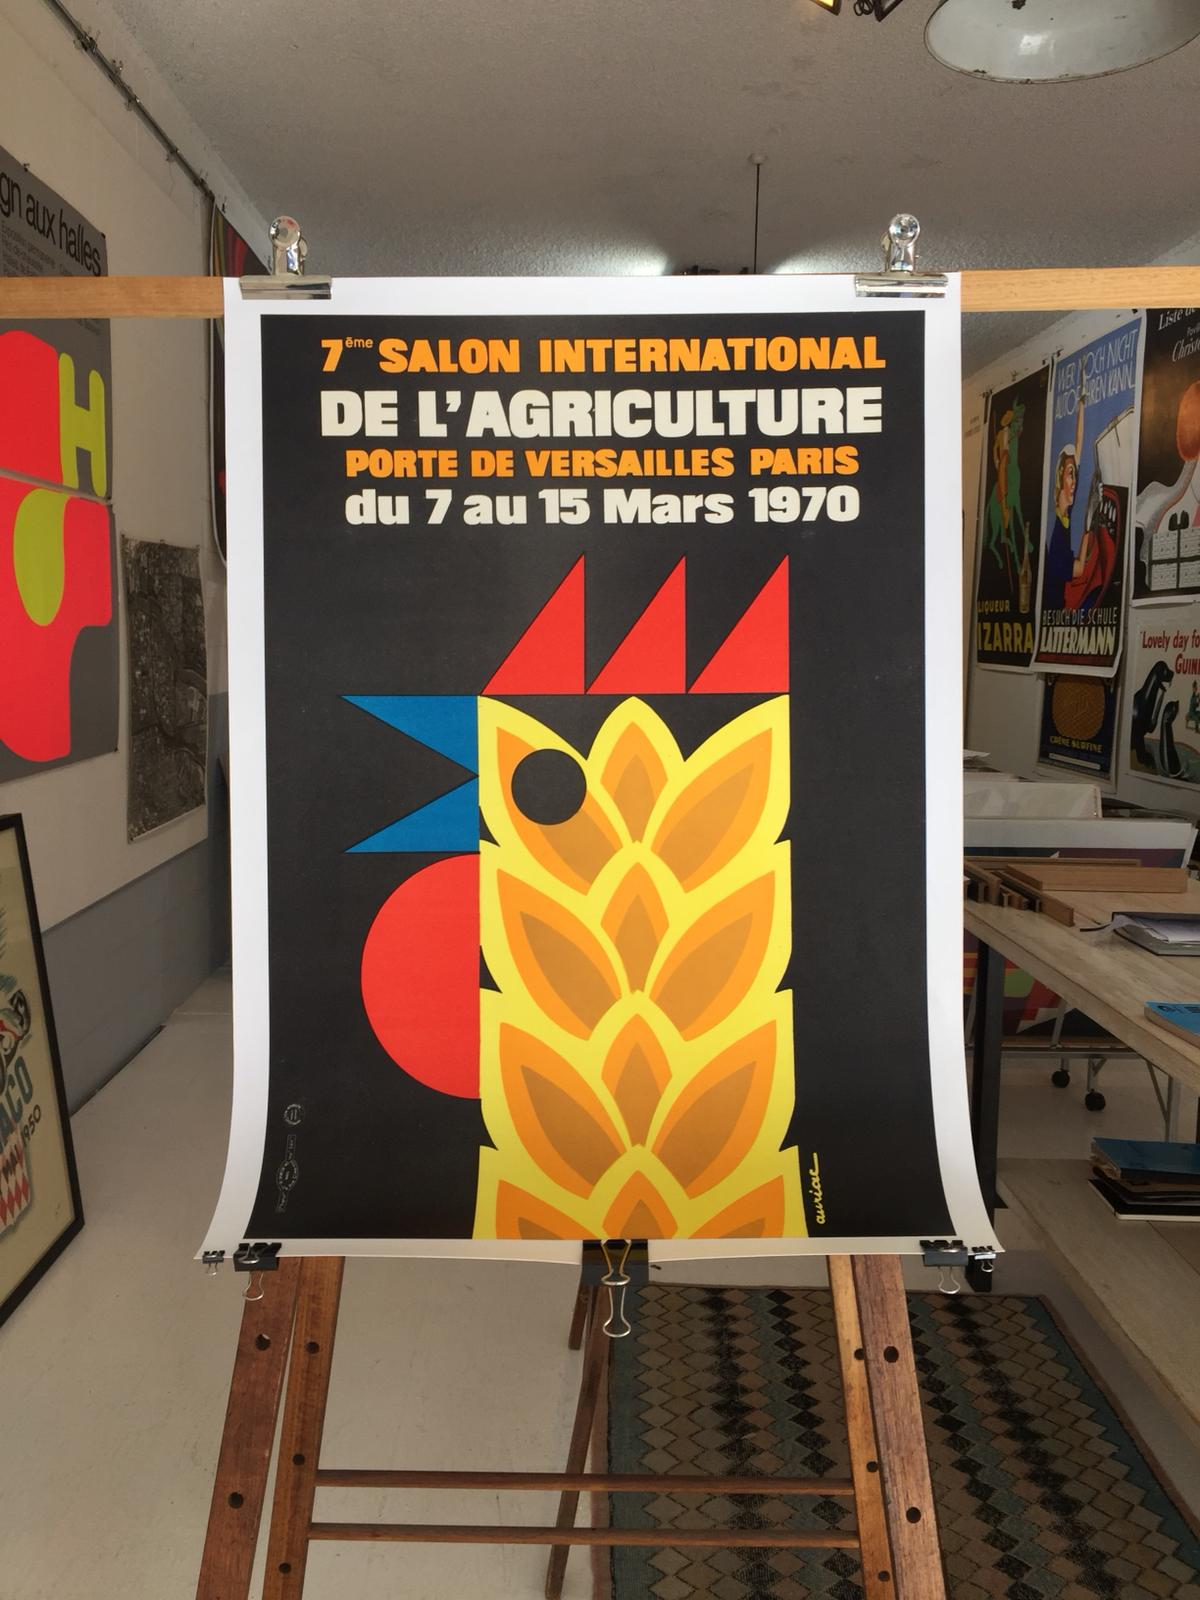 7th Salon International de L'agriculture